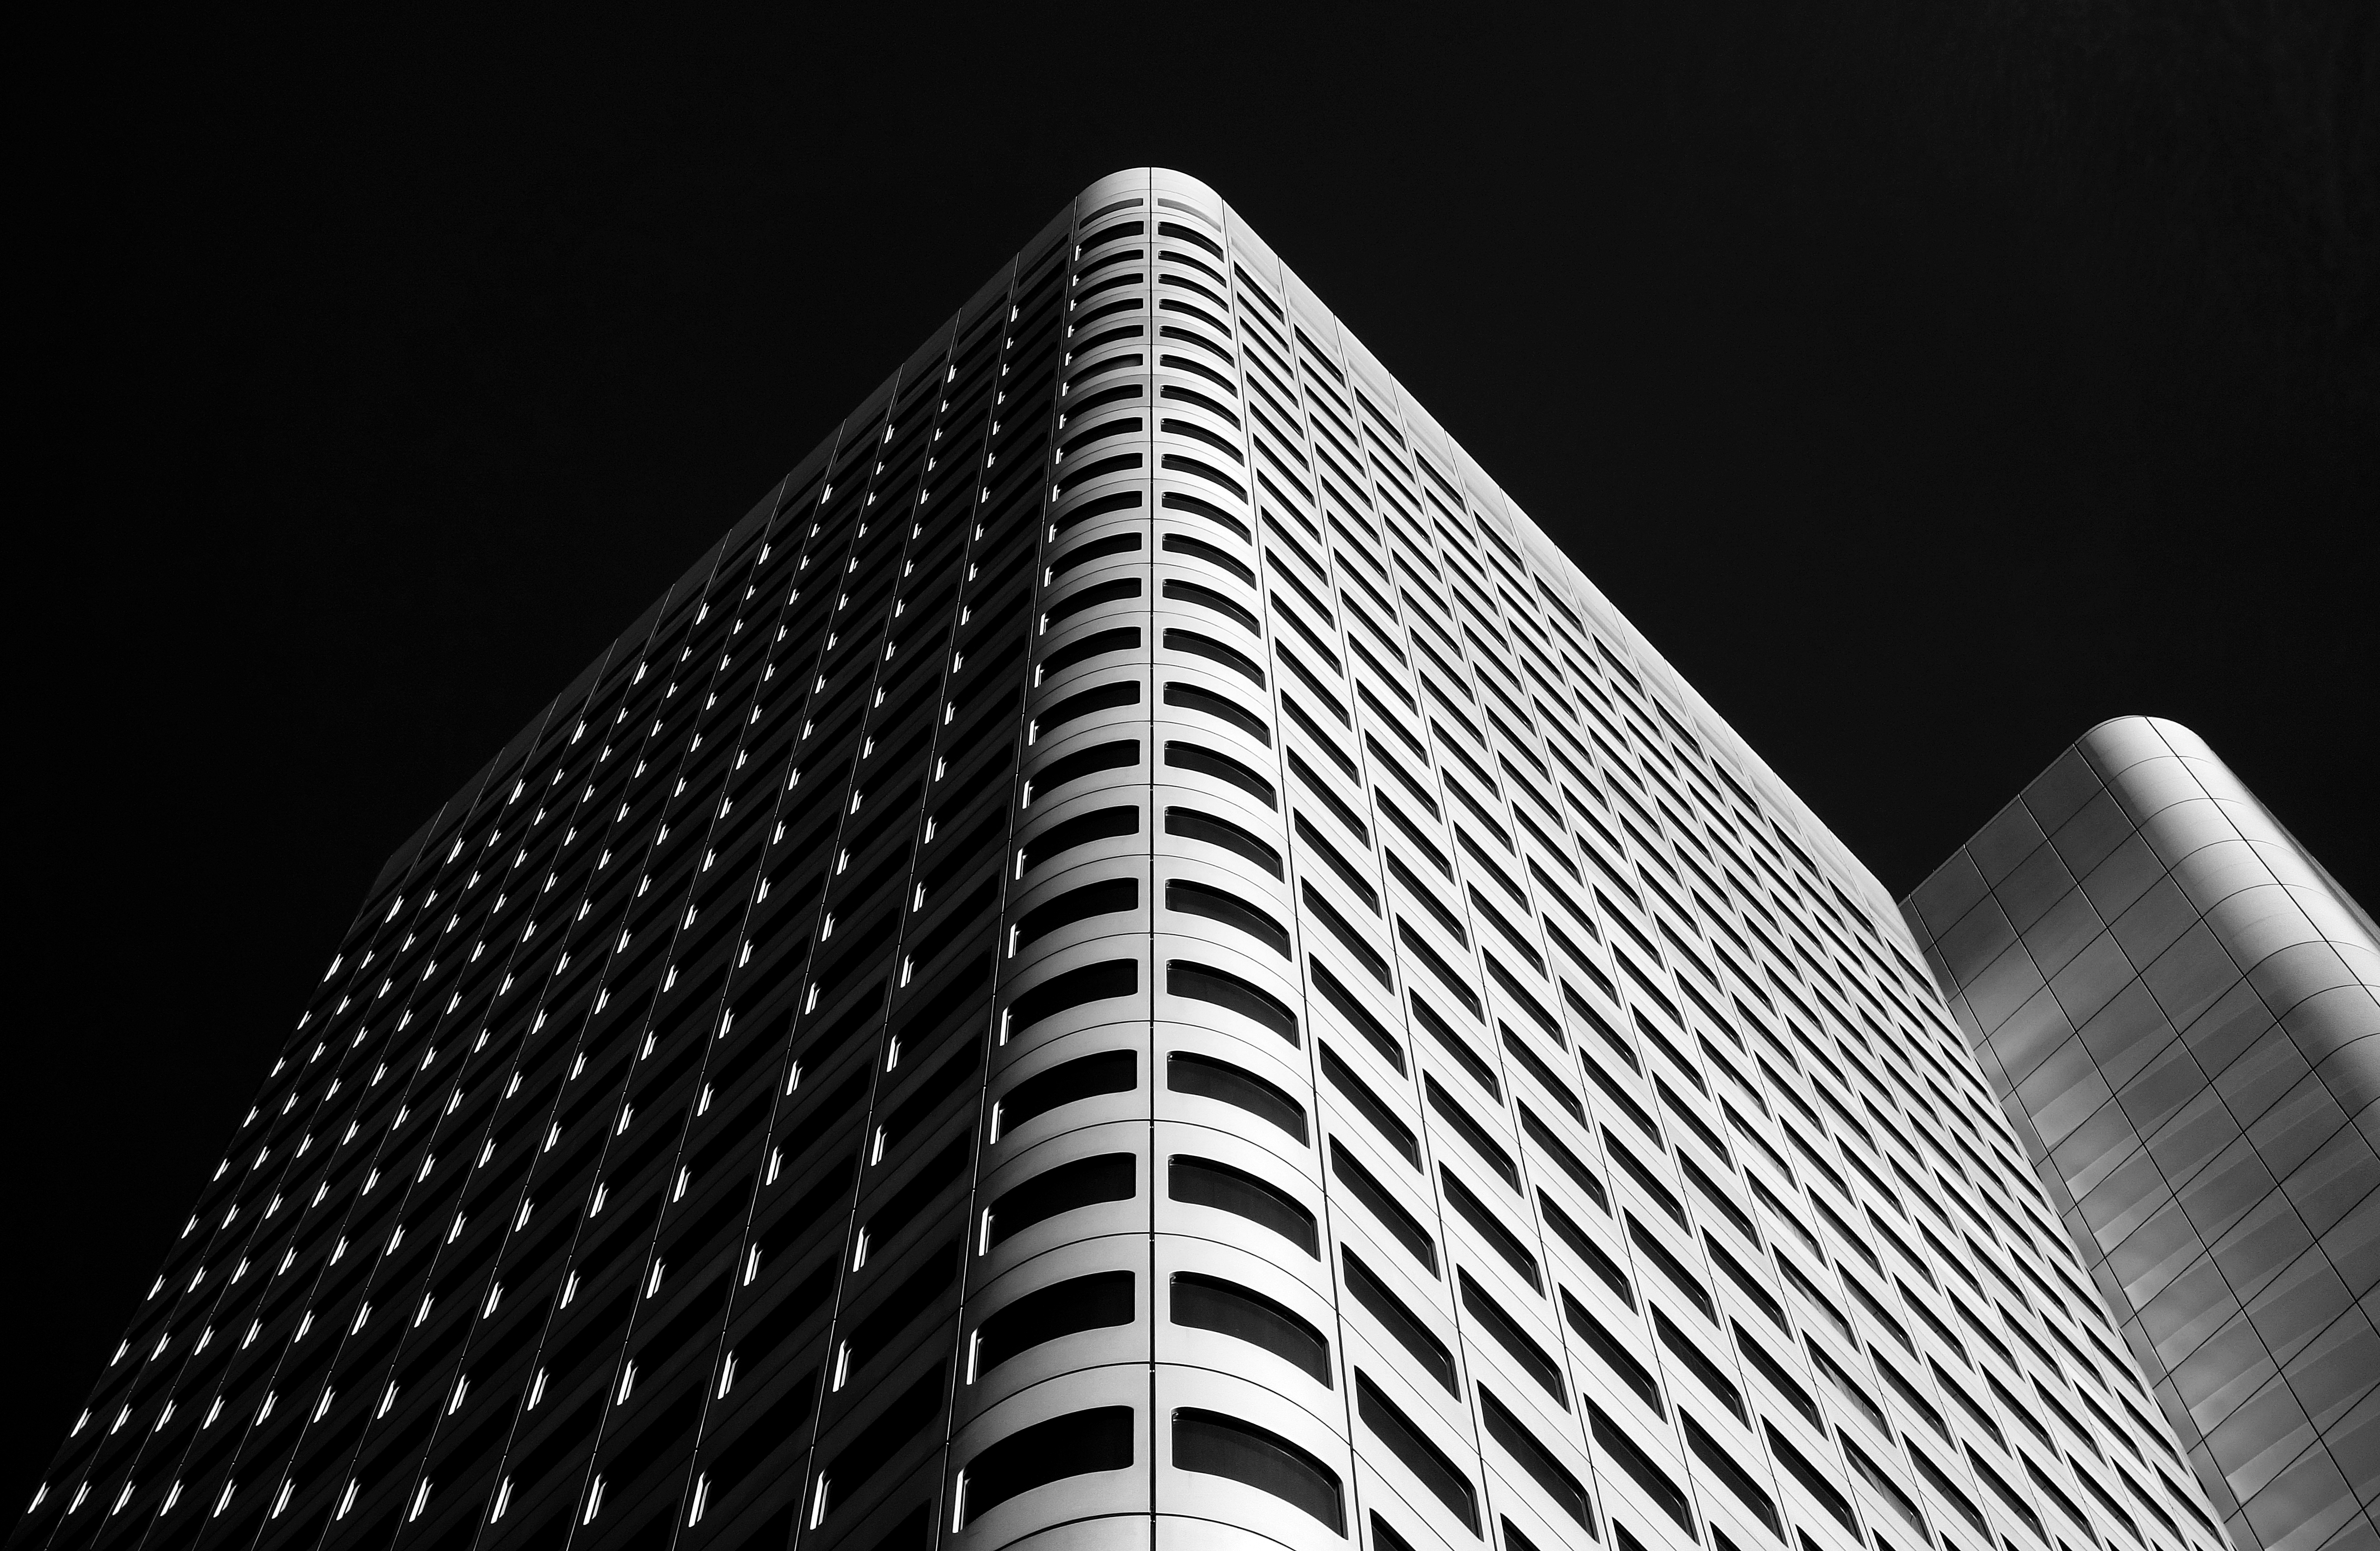 5078x3309 Free Images Black And White, Architecture, Building, Skyscraper